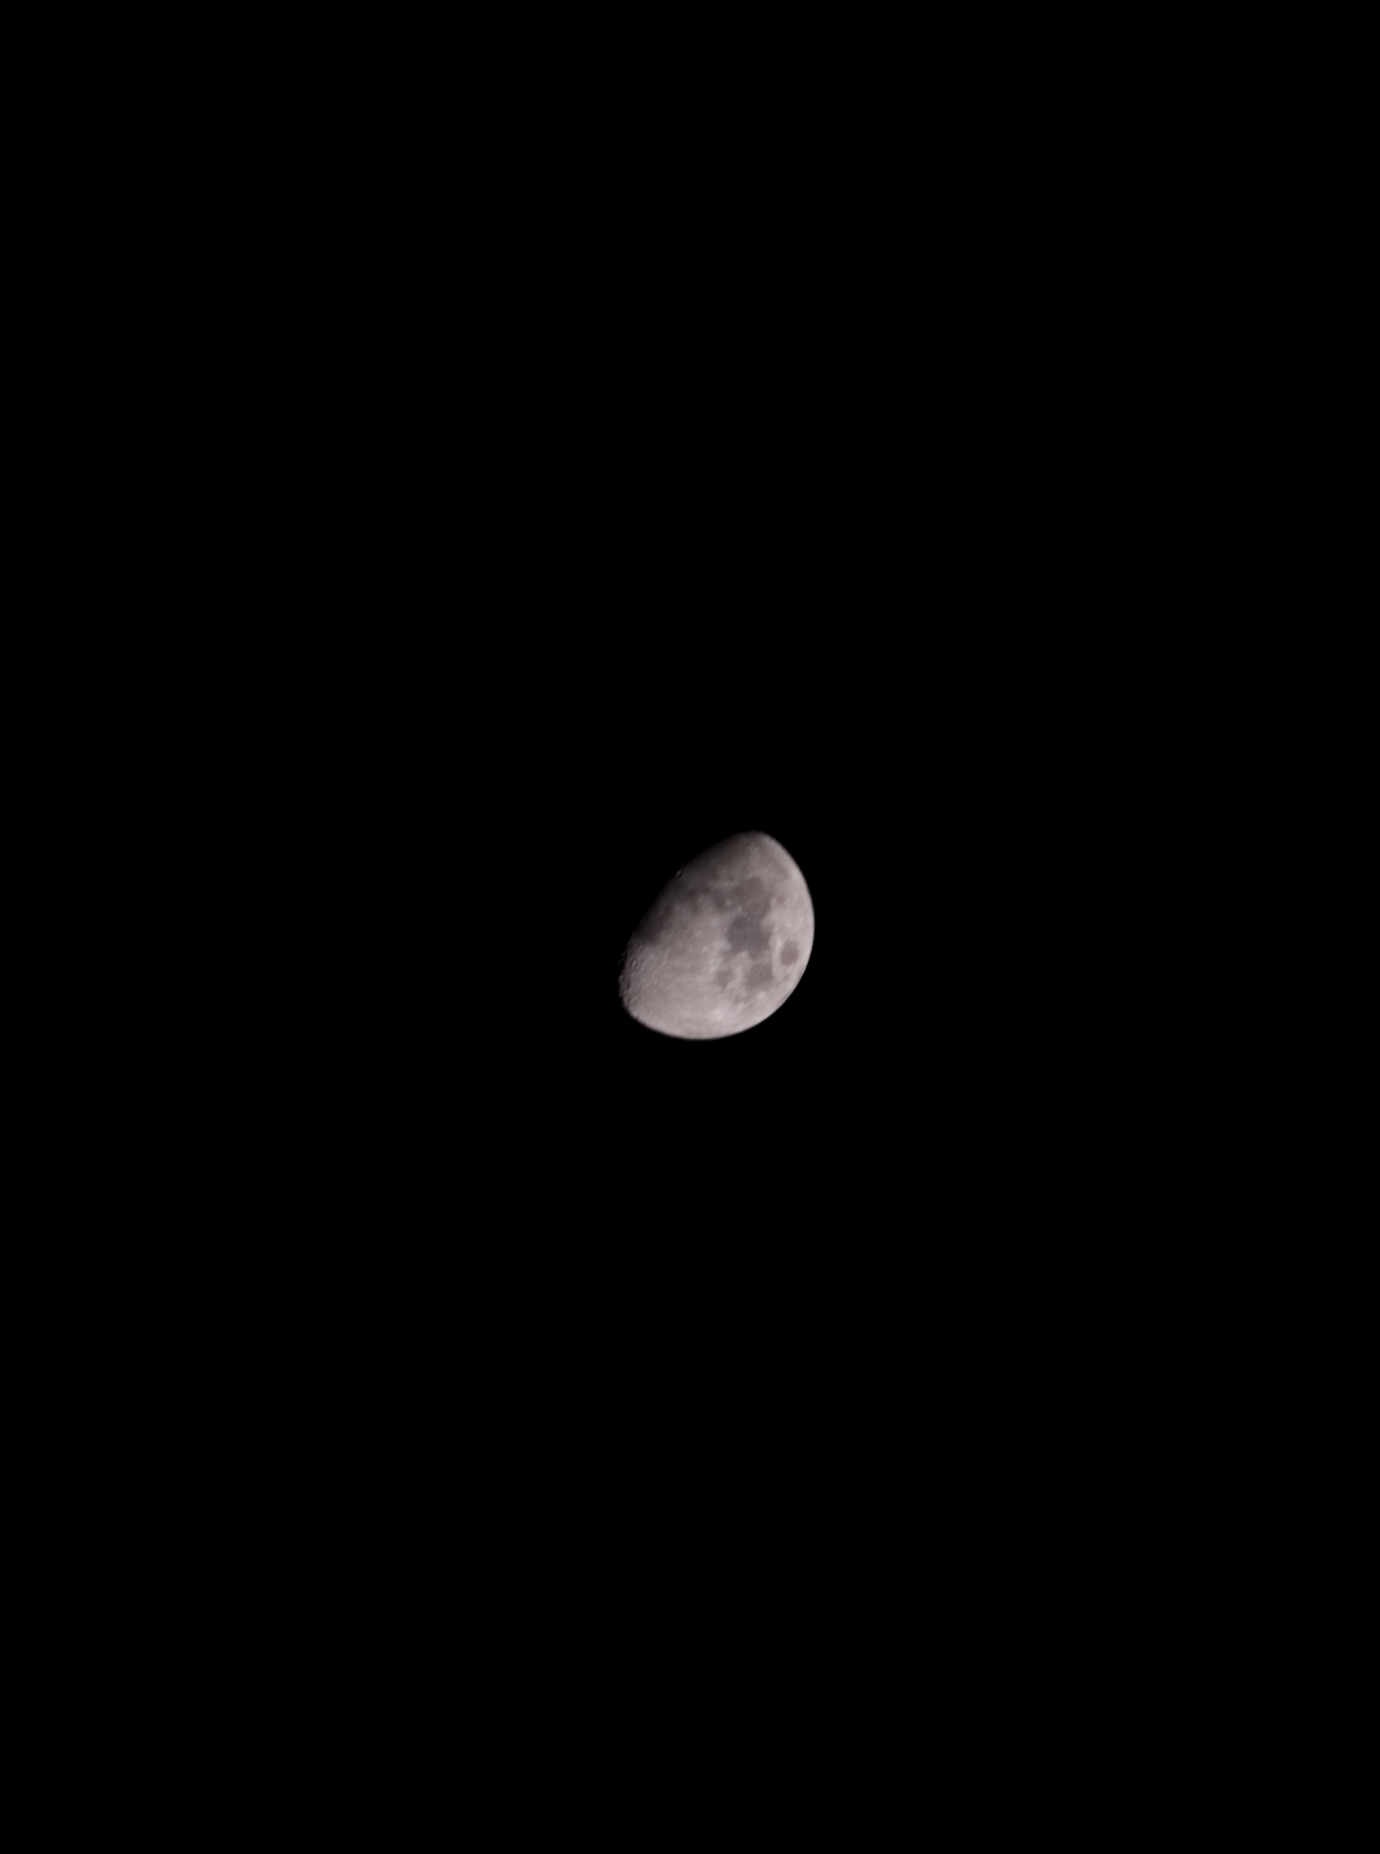 Moon in darkness